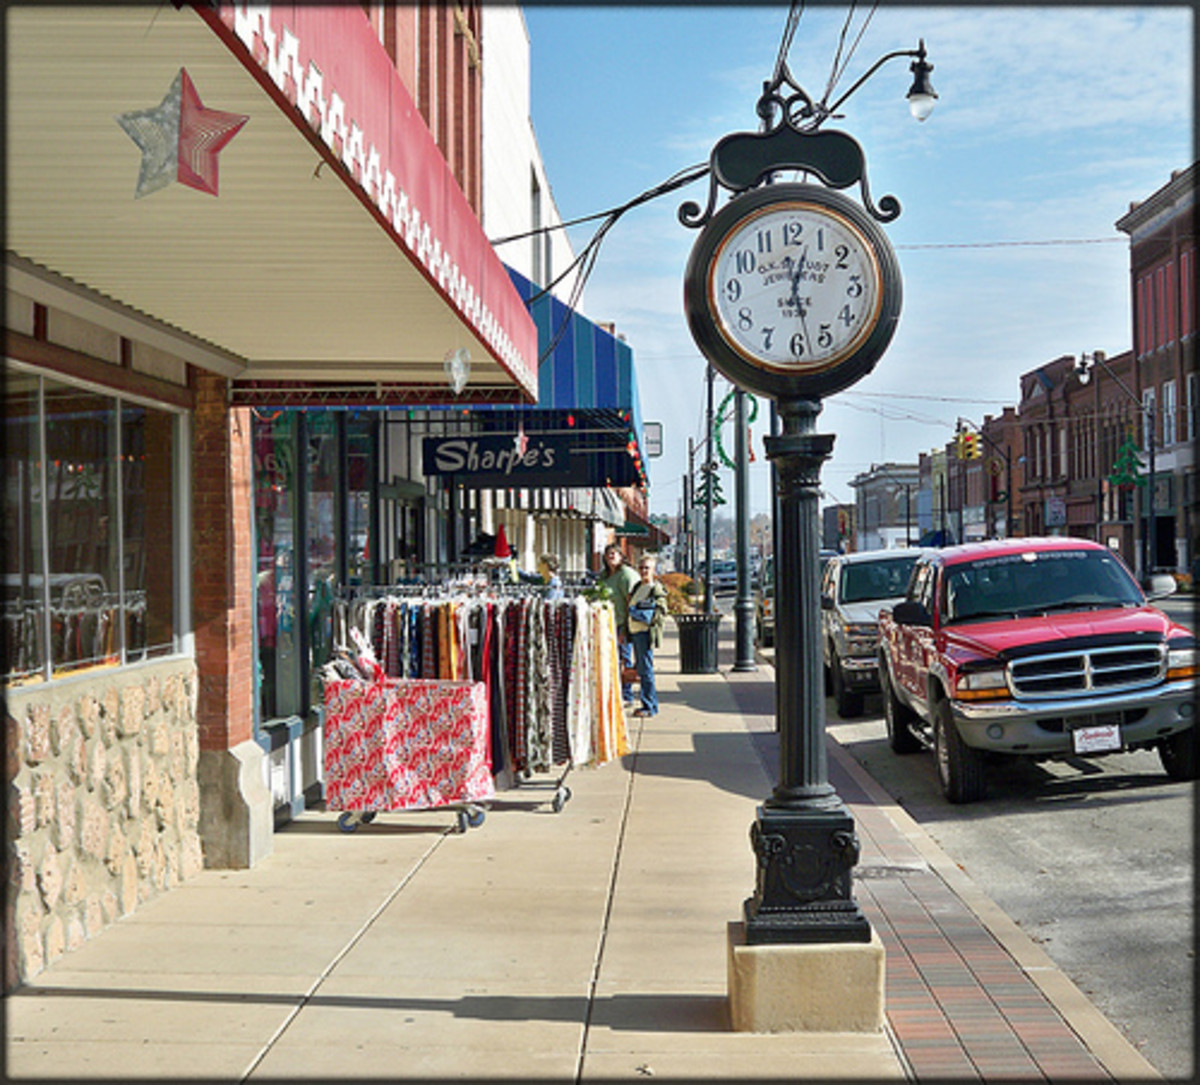 The O.K. Staudt's Jewelers clock in downtown Okmulgee.